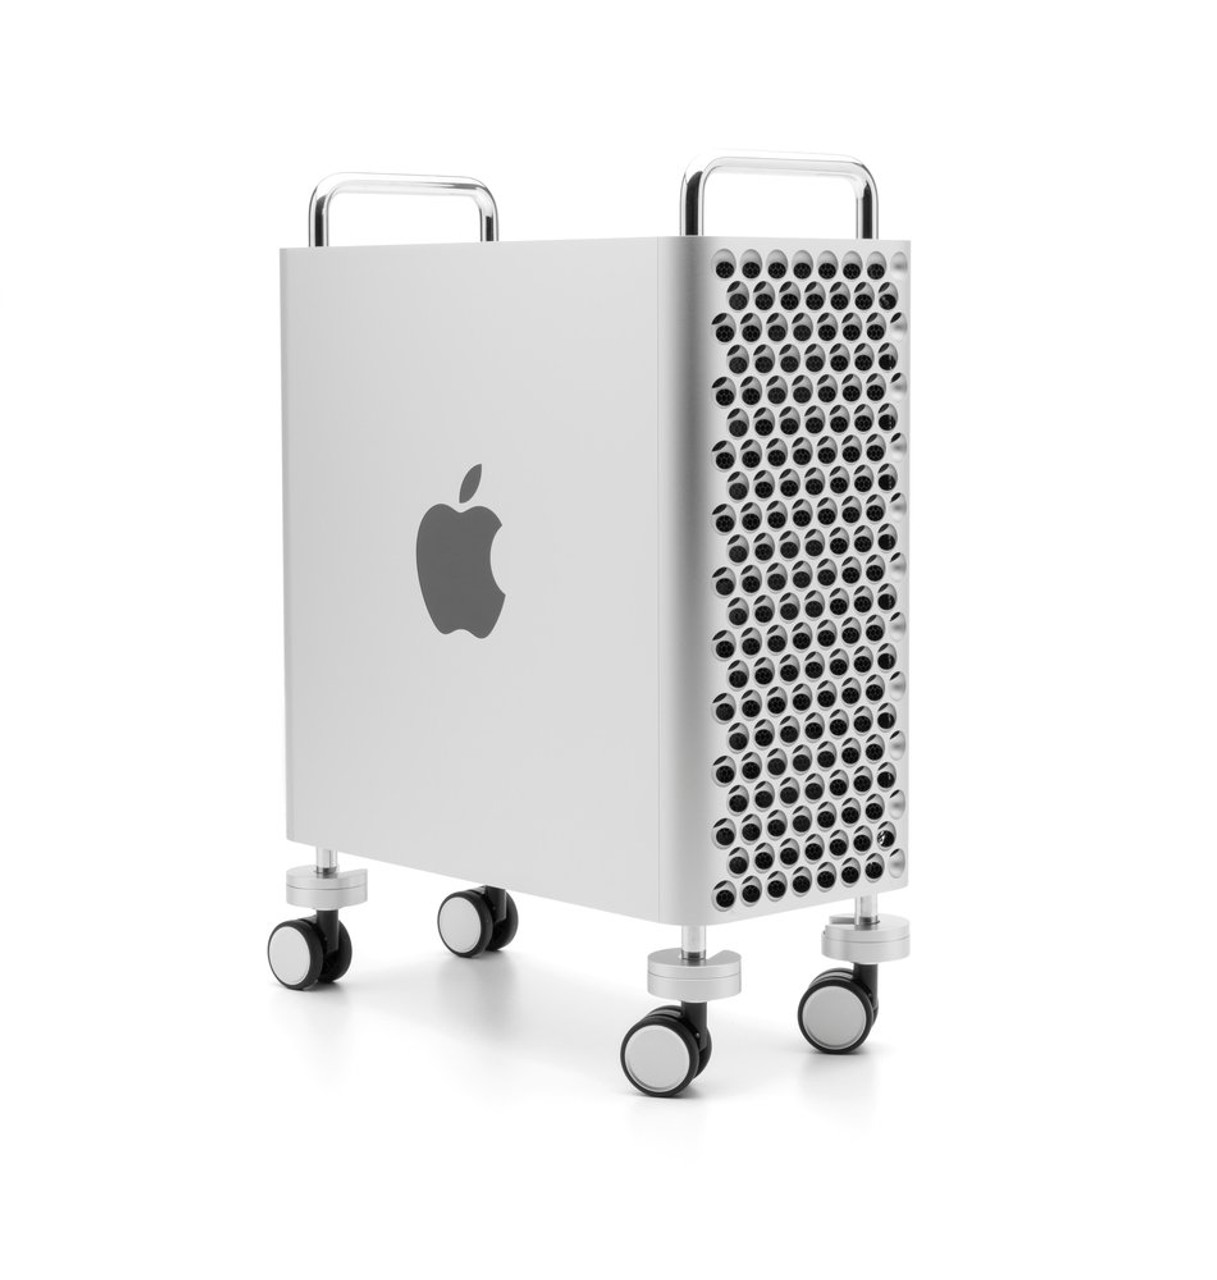 OWC Rover Pro Wheels Kit for Mac Pro (2019)